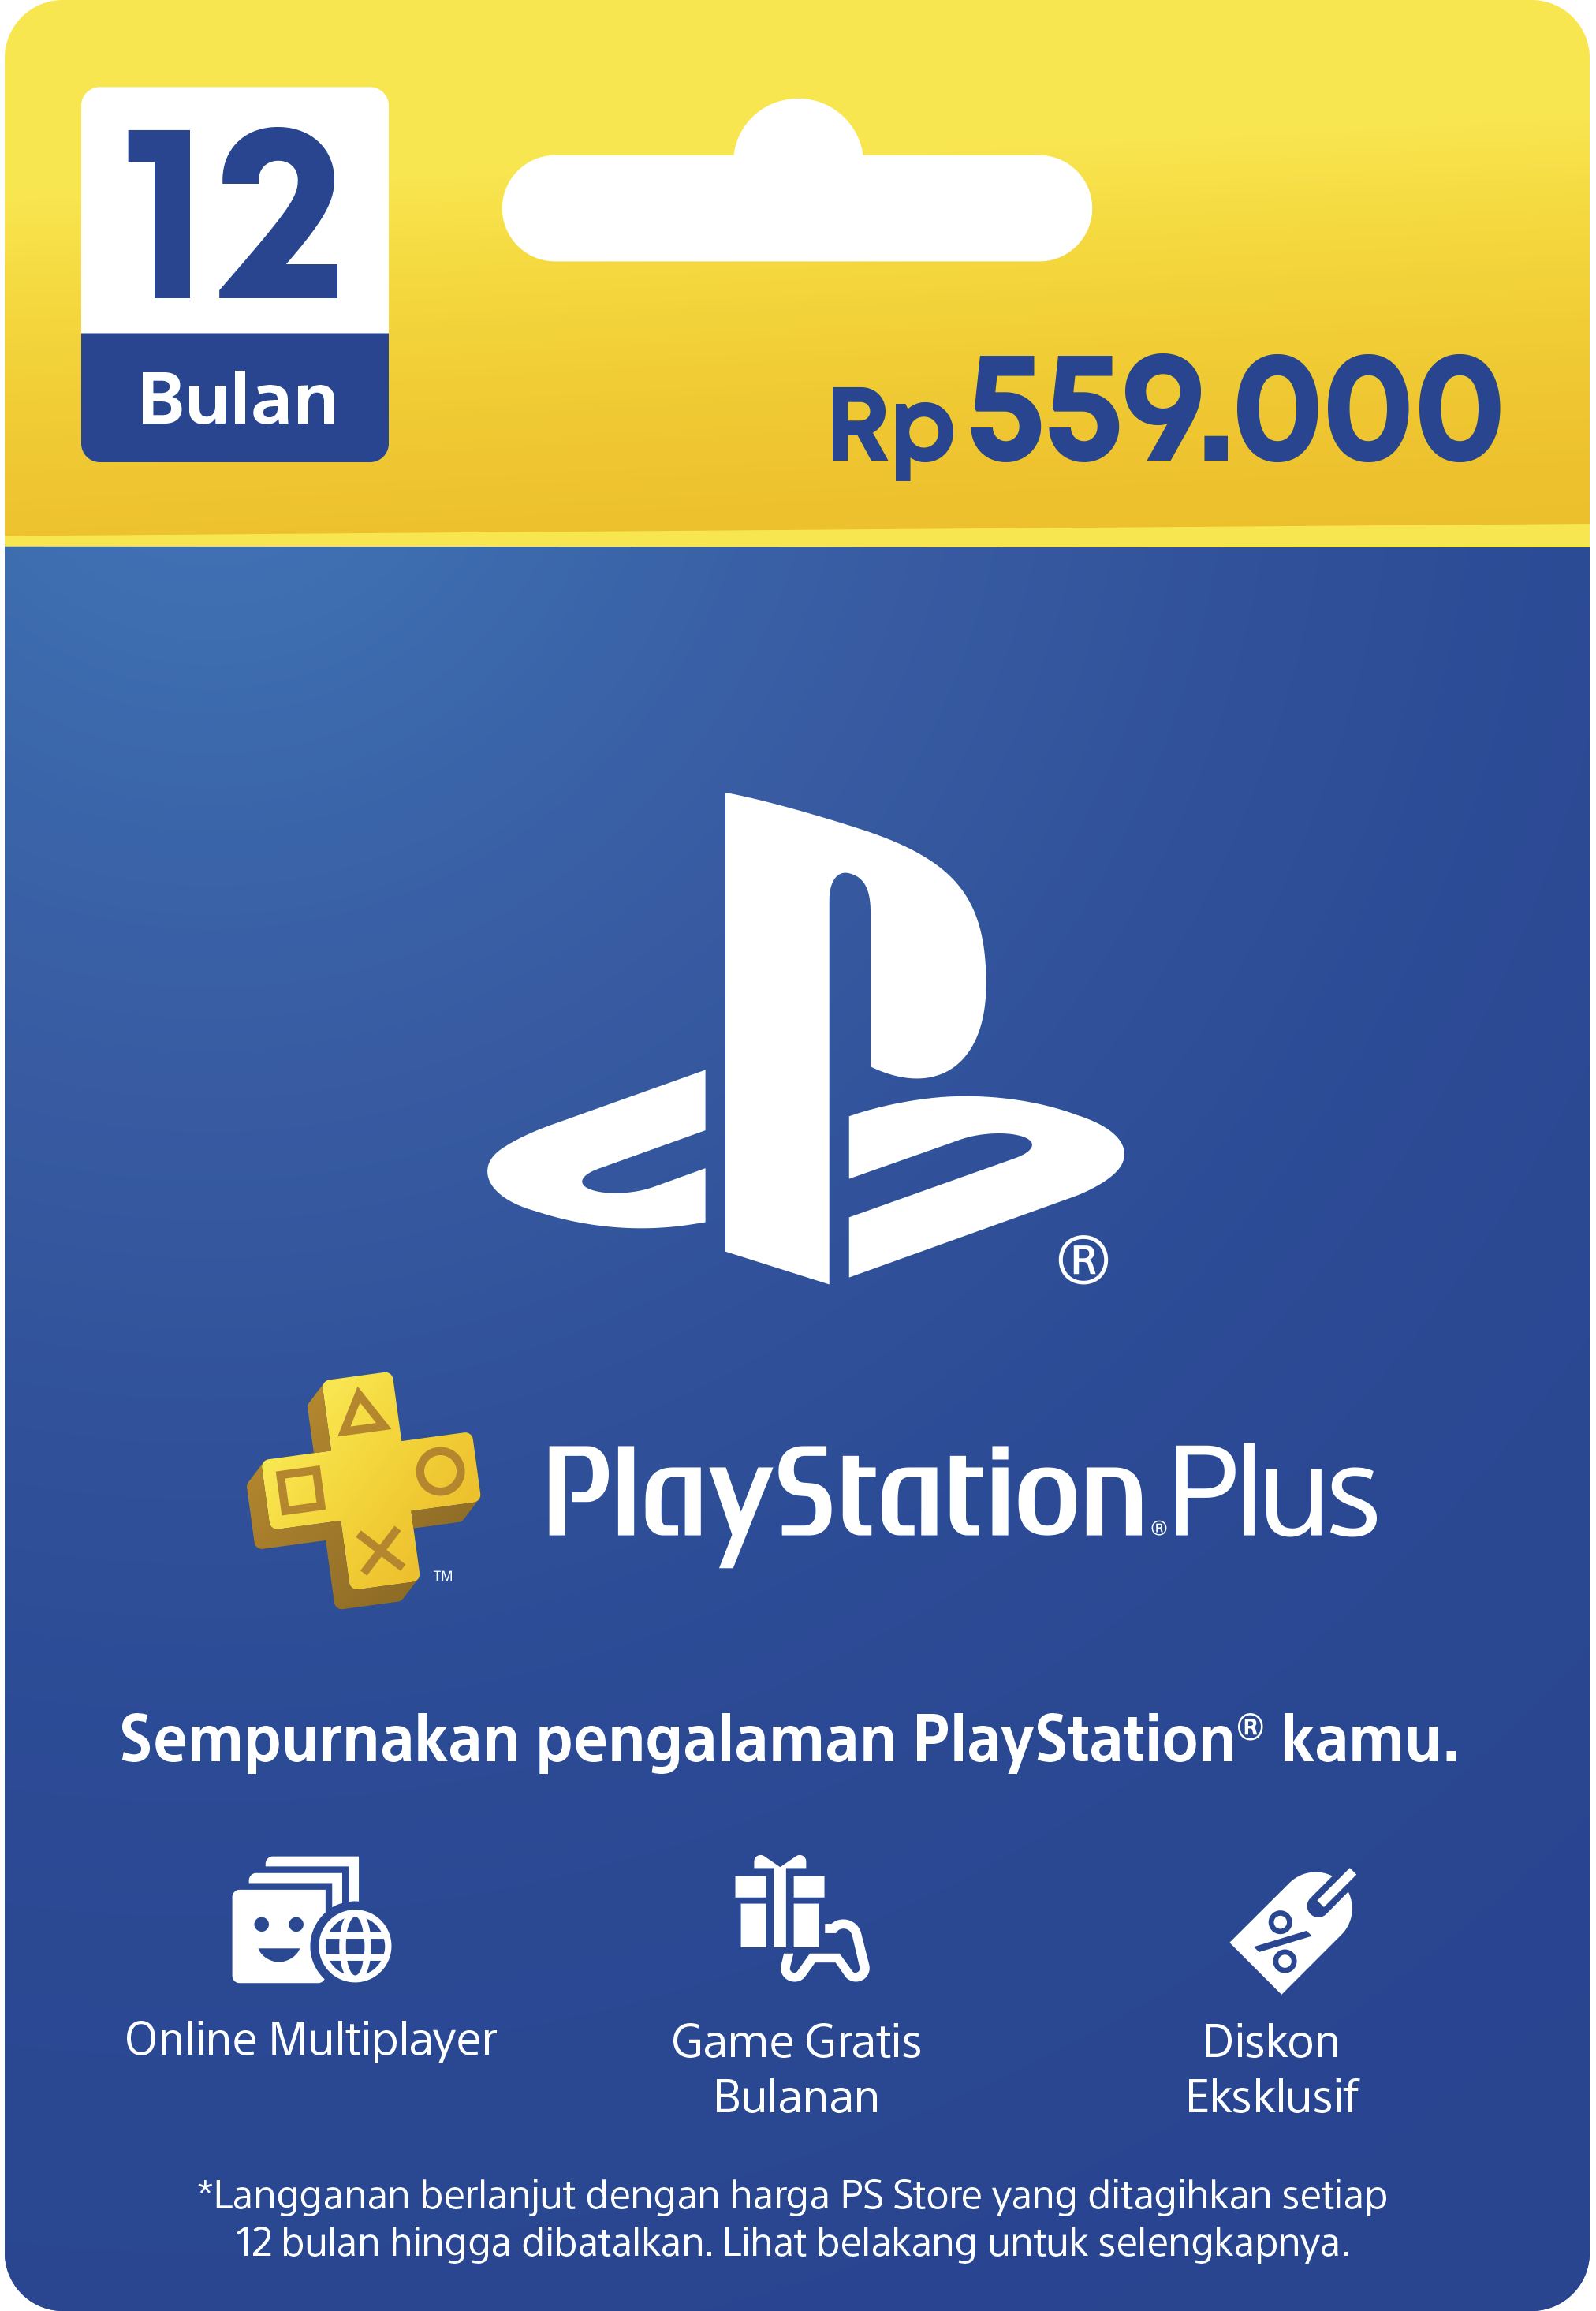 PlayStation Plus card image